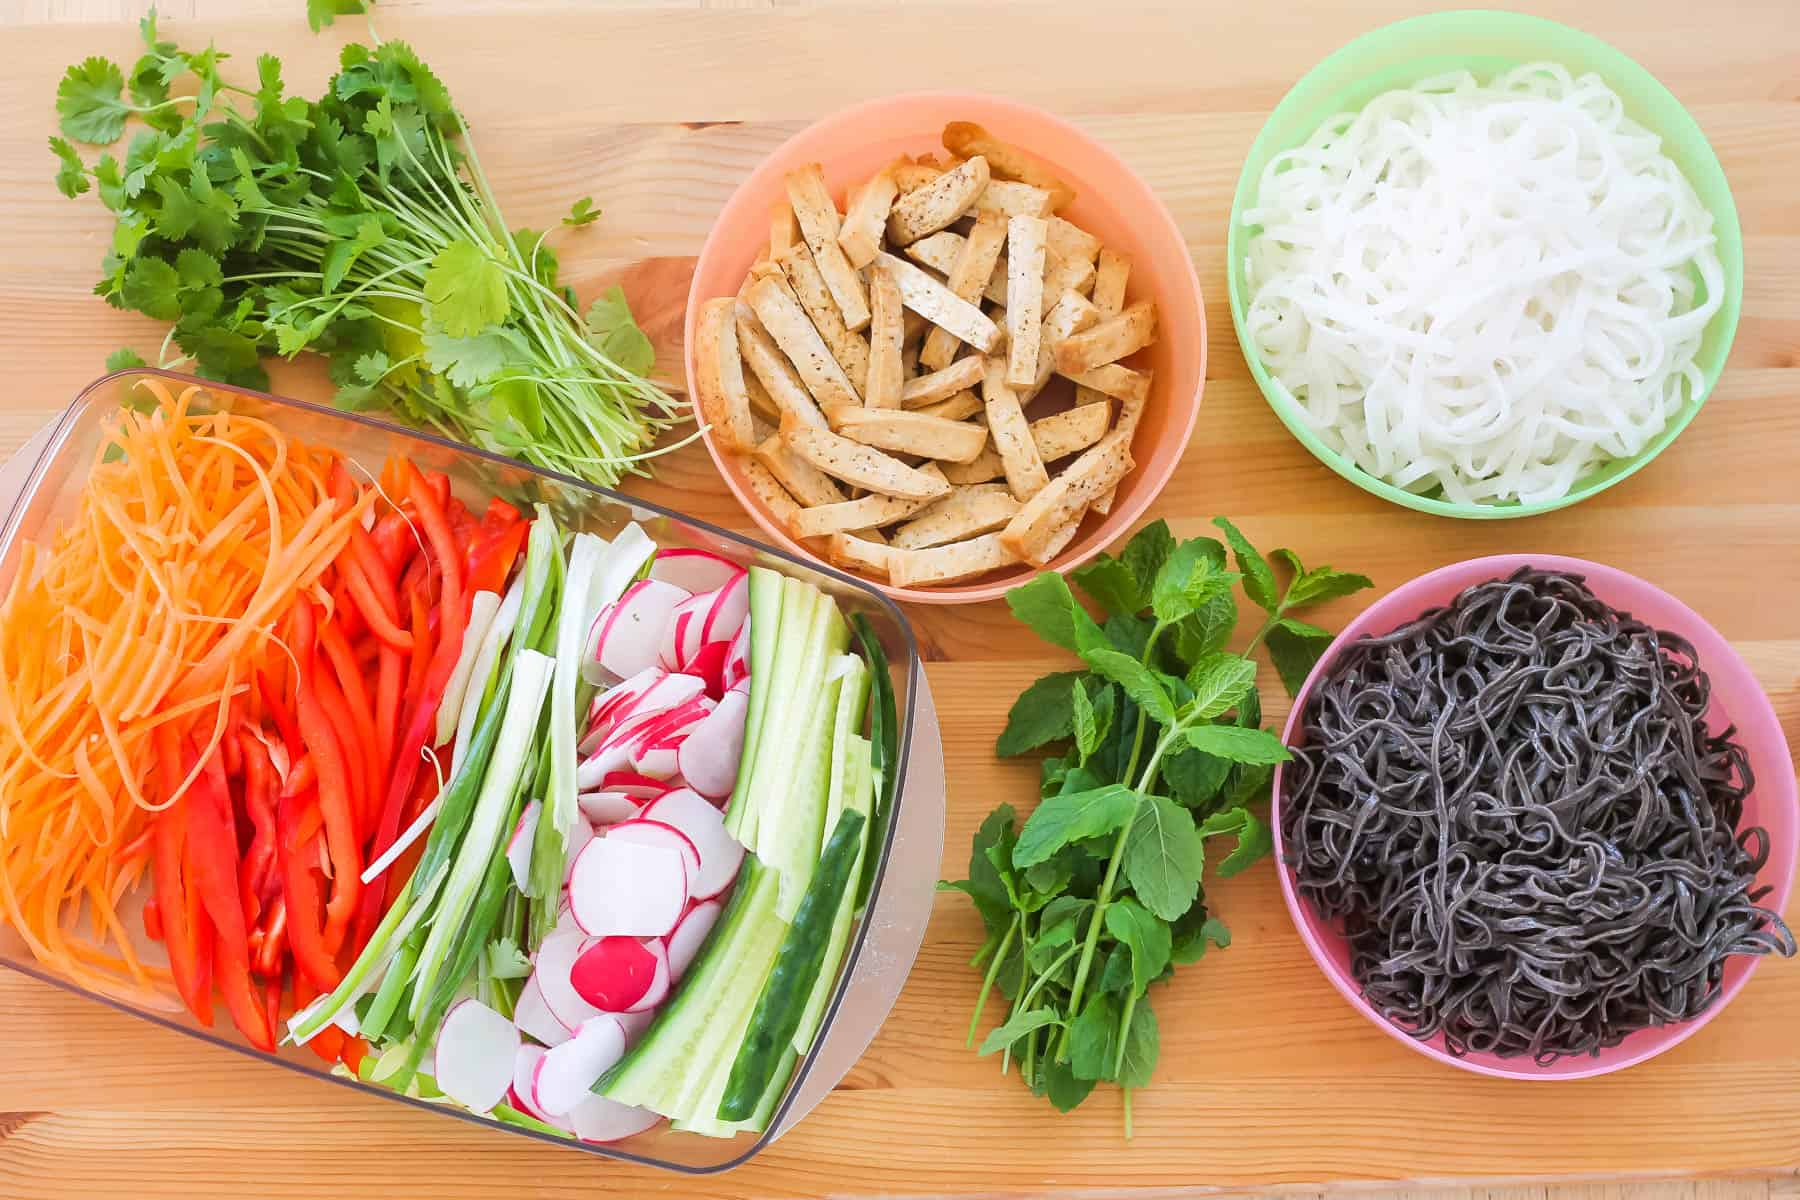 baked tofu, rice noodles, black bean noodles, cilantro, mint, and thinly sliced vegetables on a wooden background